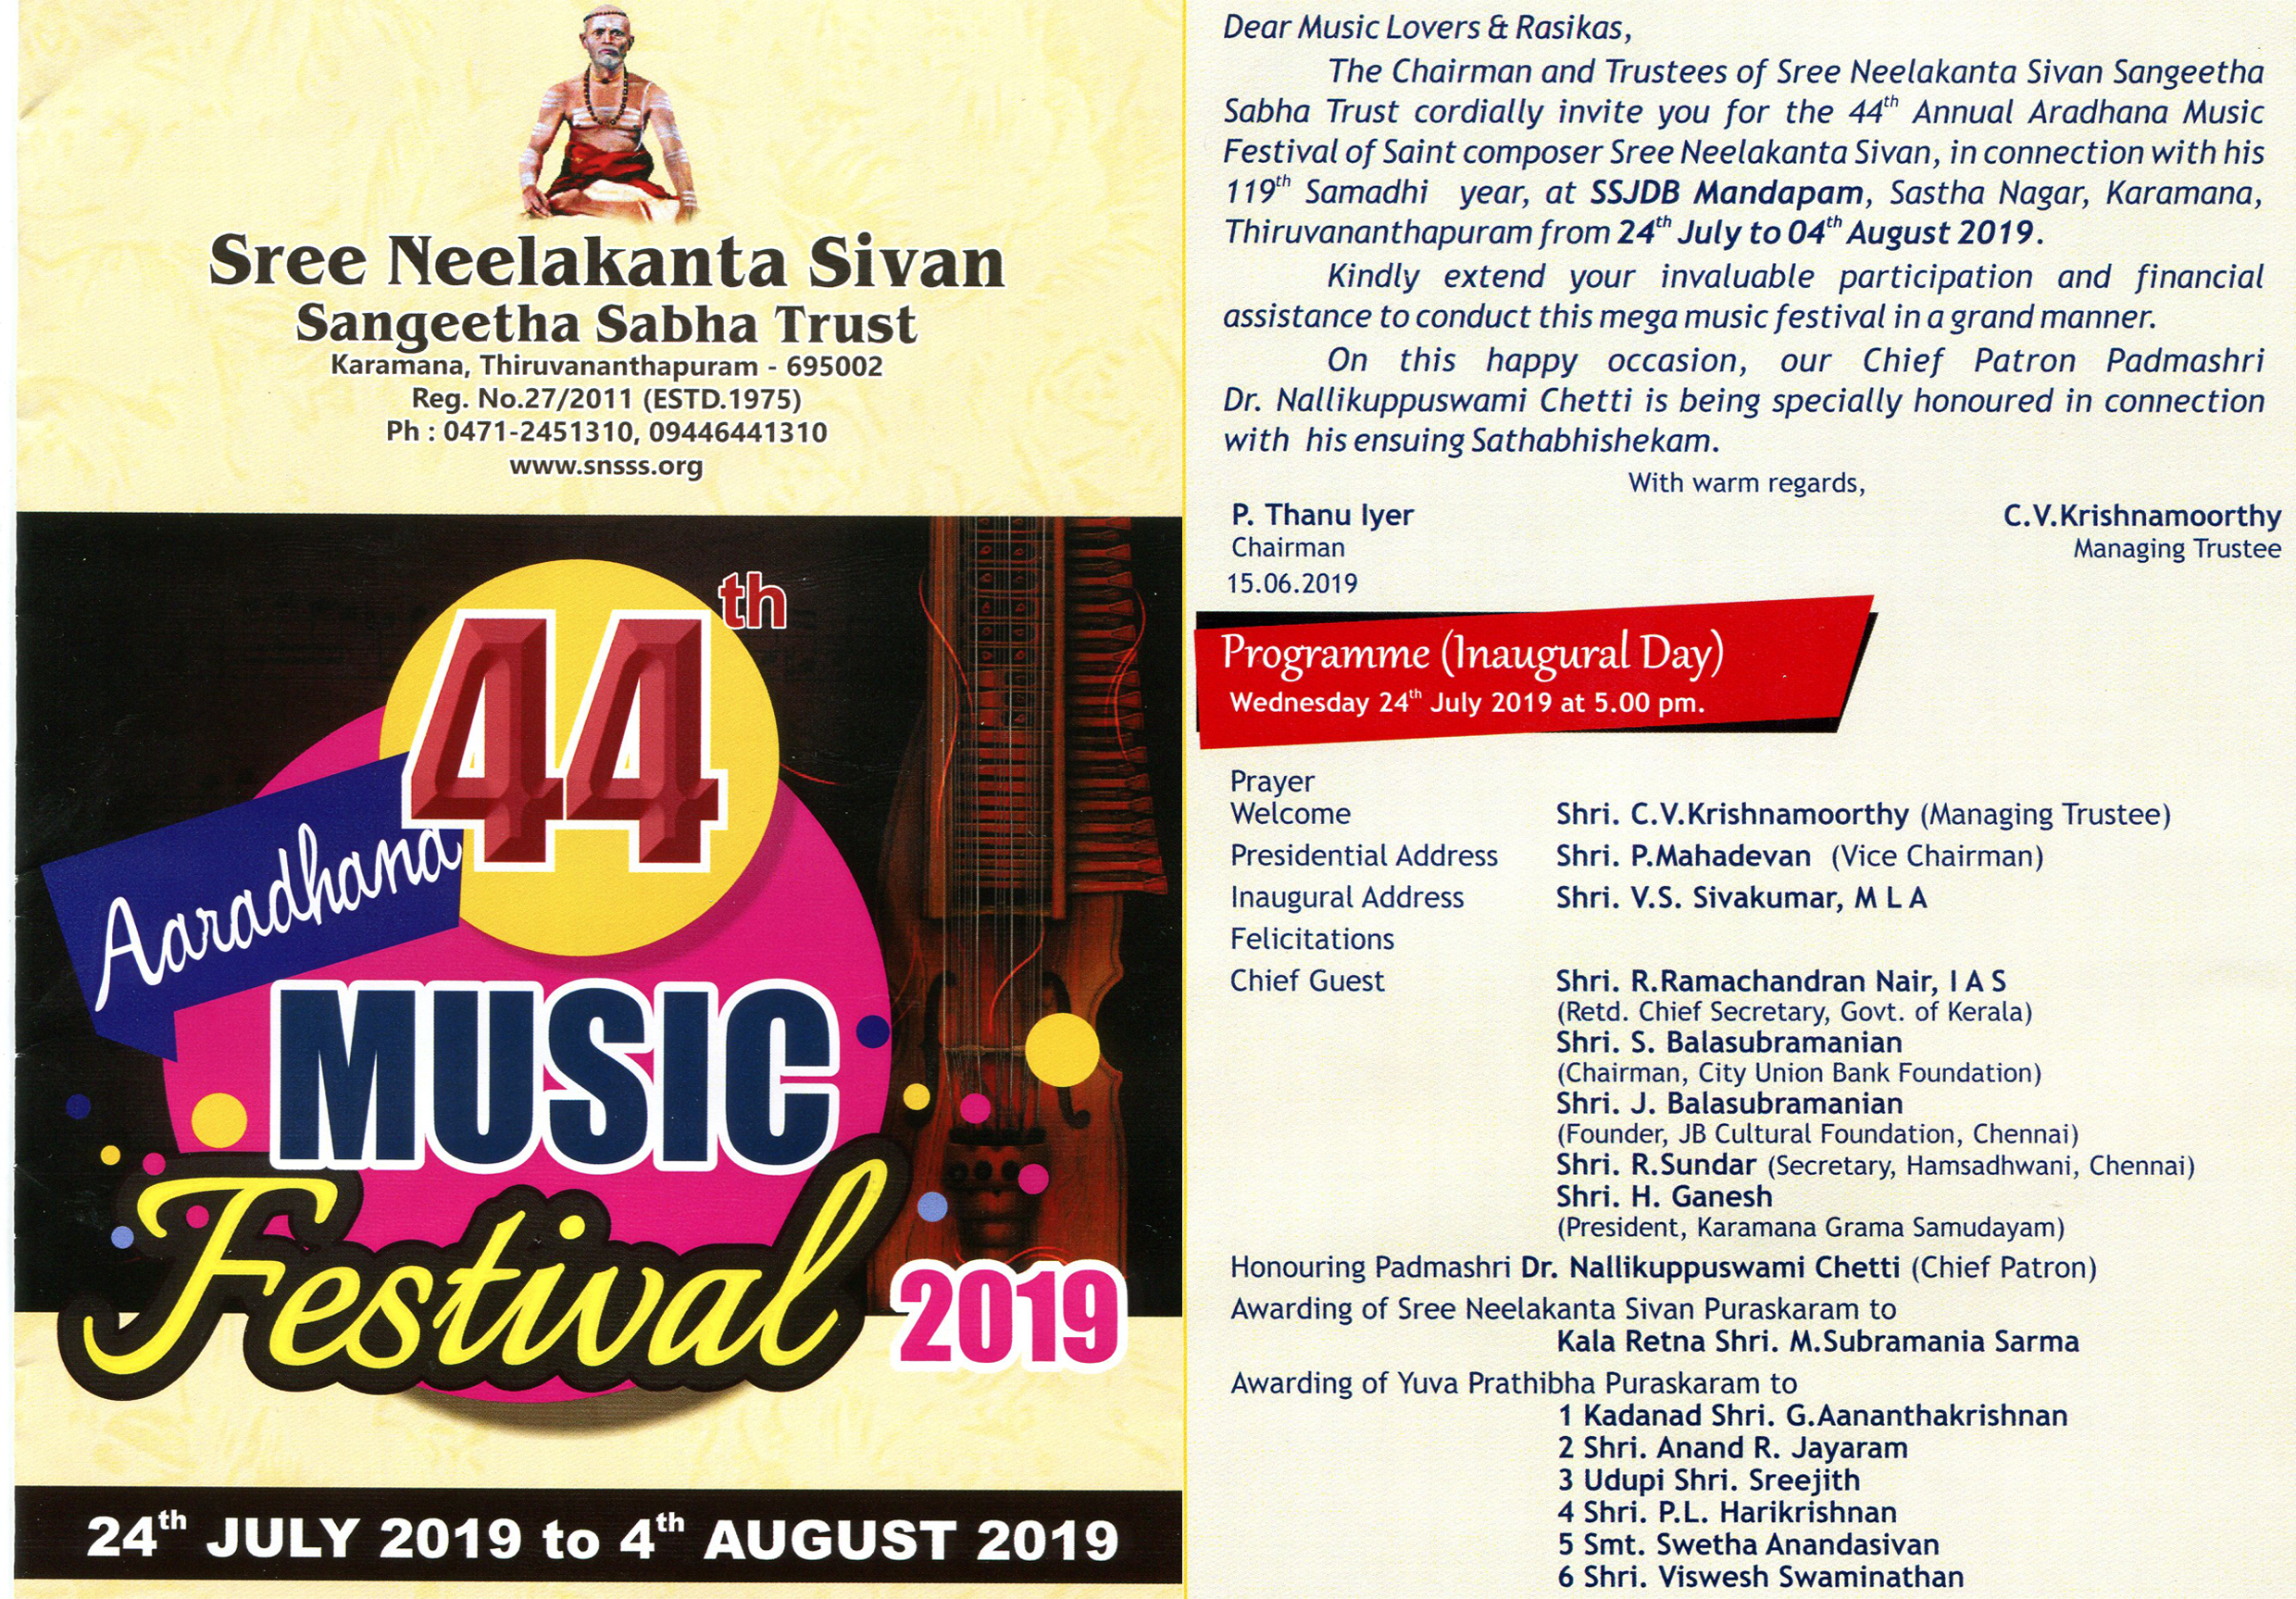 Aaradhana 44th Muisc Festival 2019